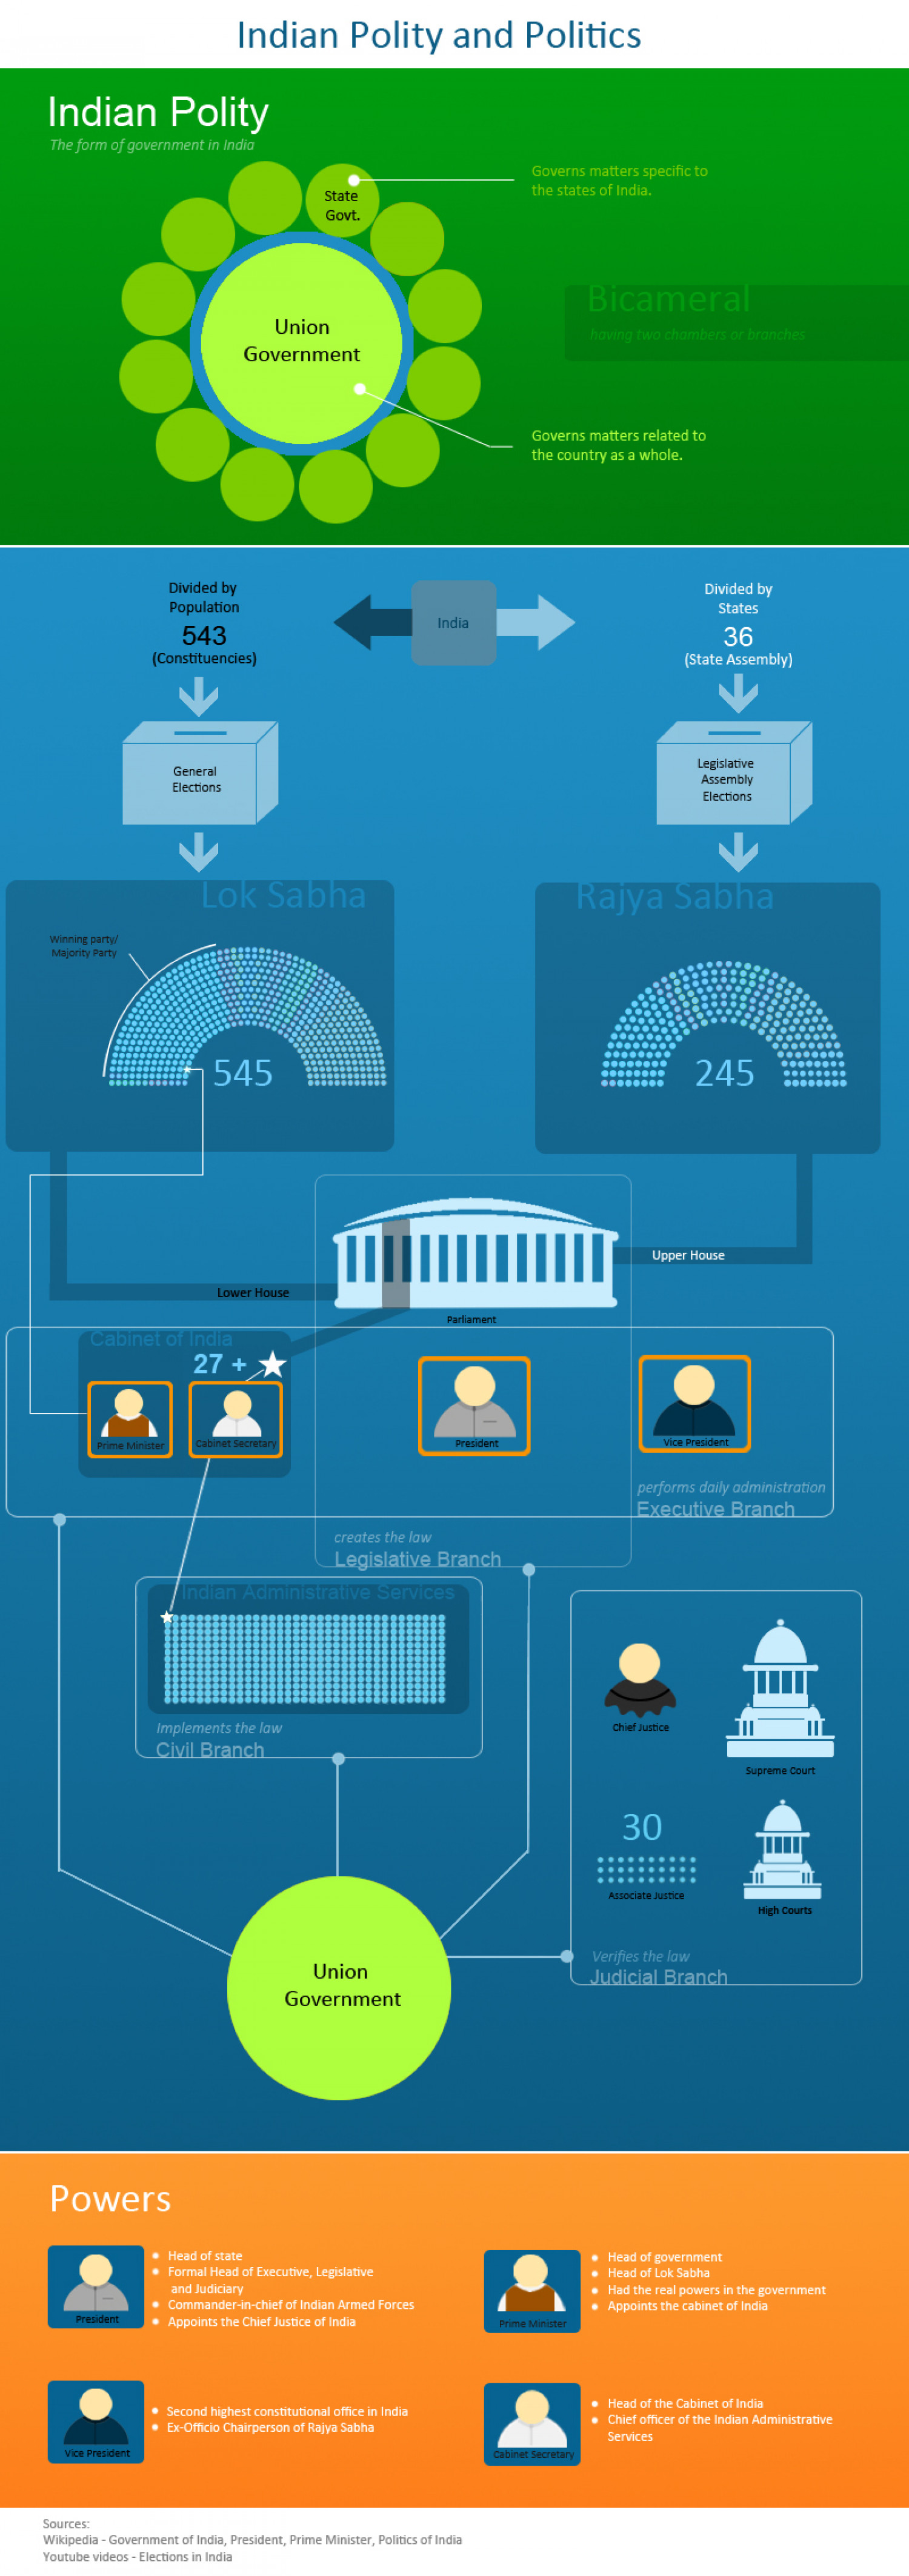 Indian Polity and Politics Infographic